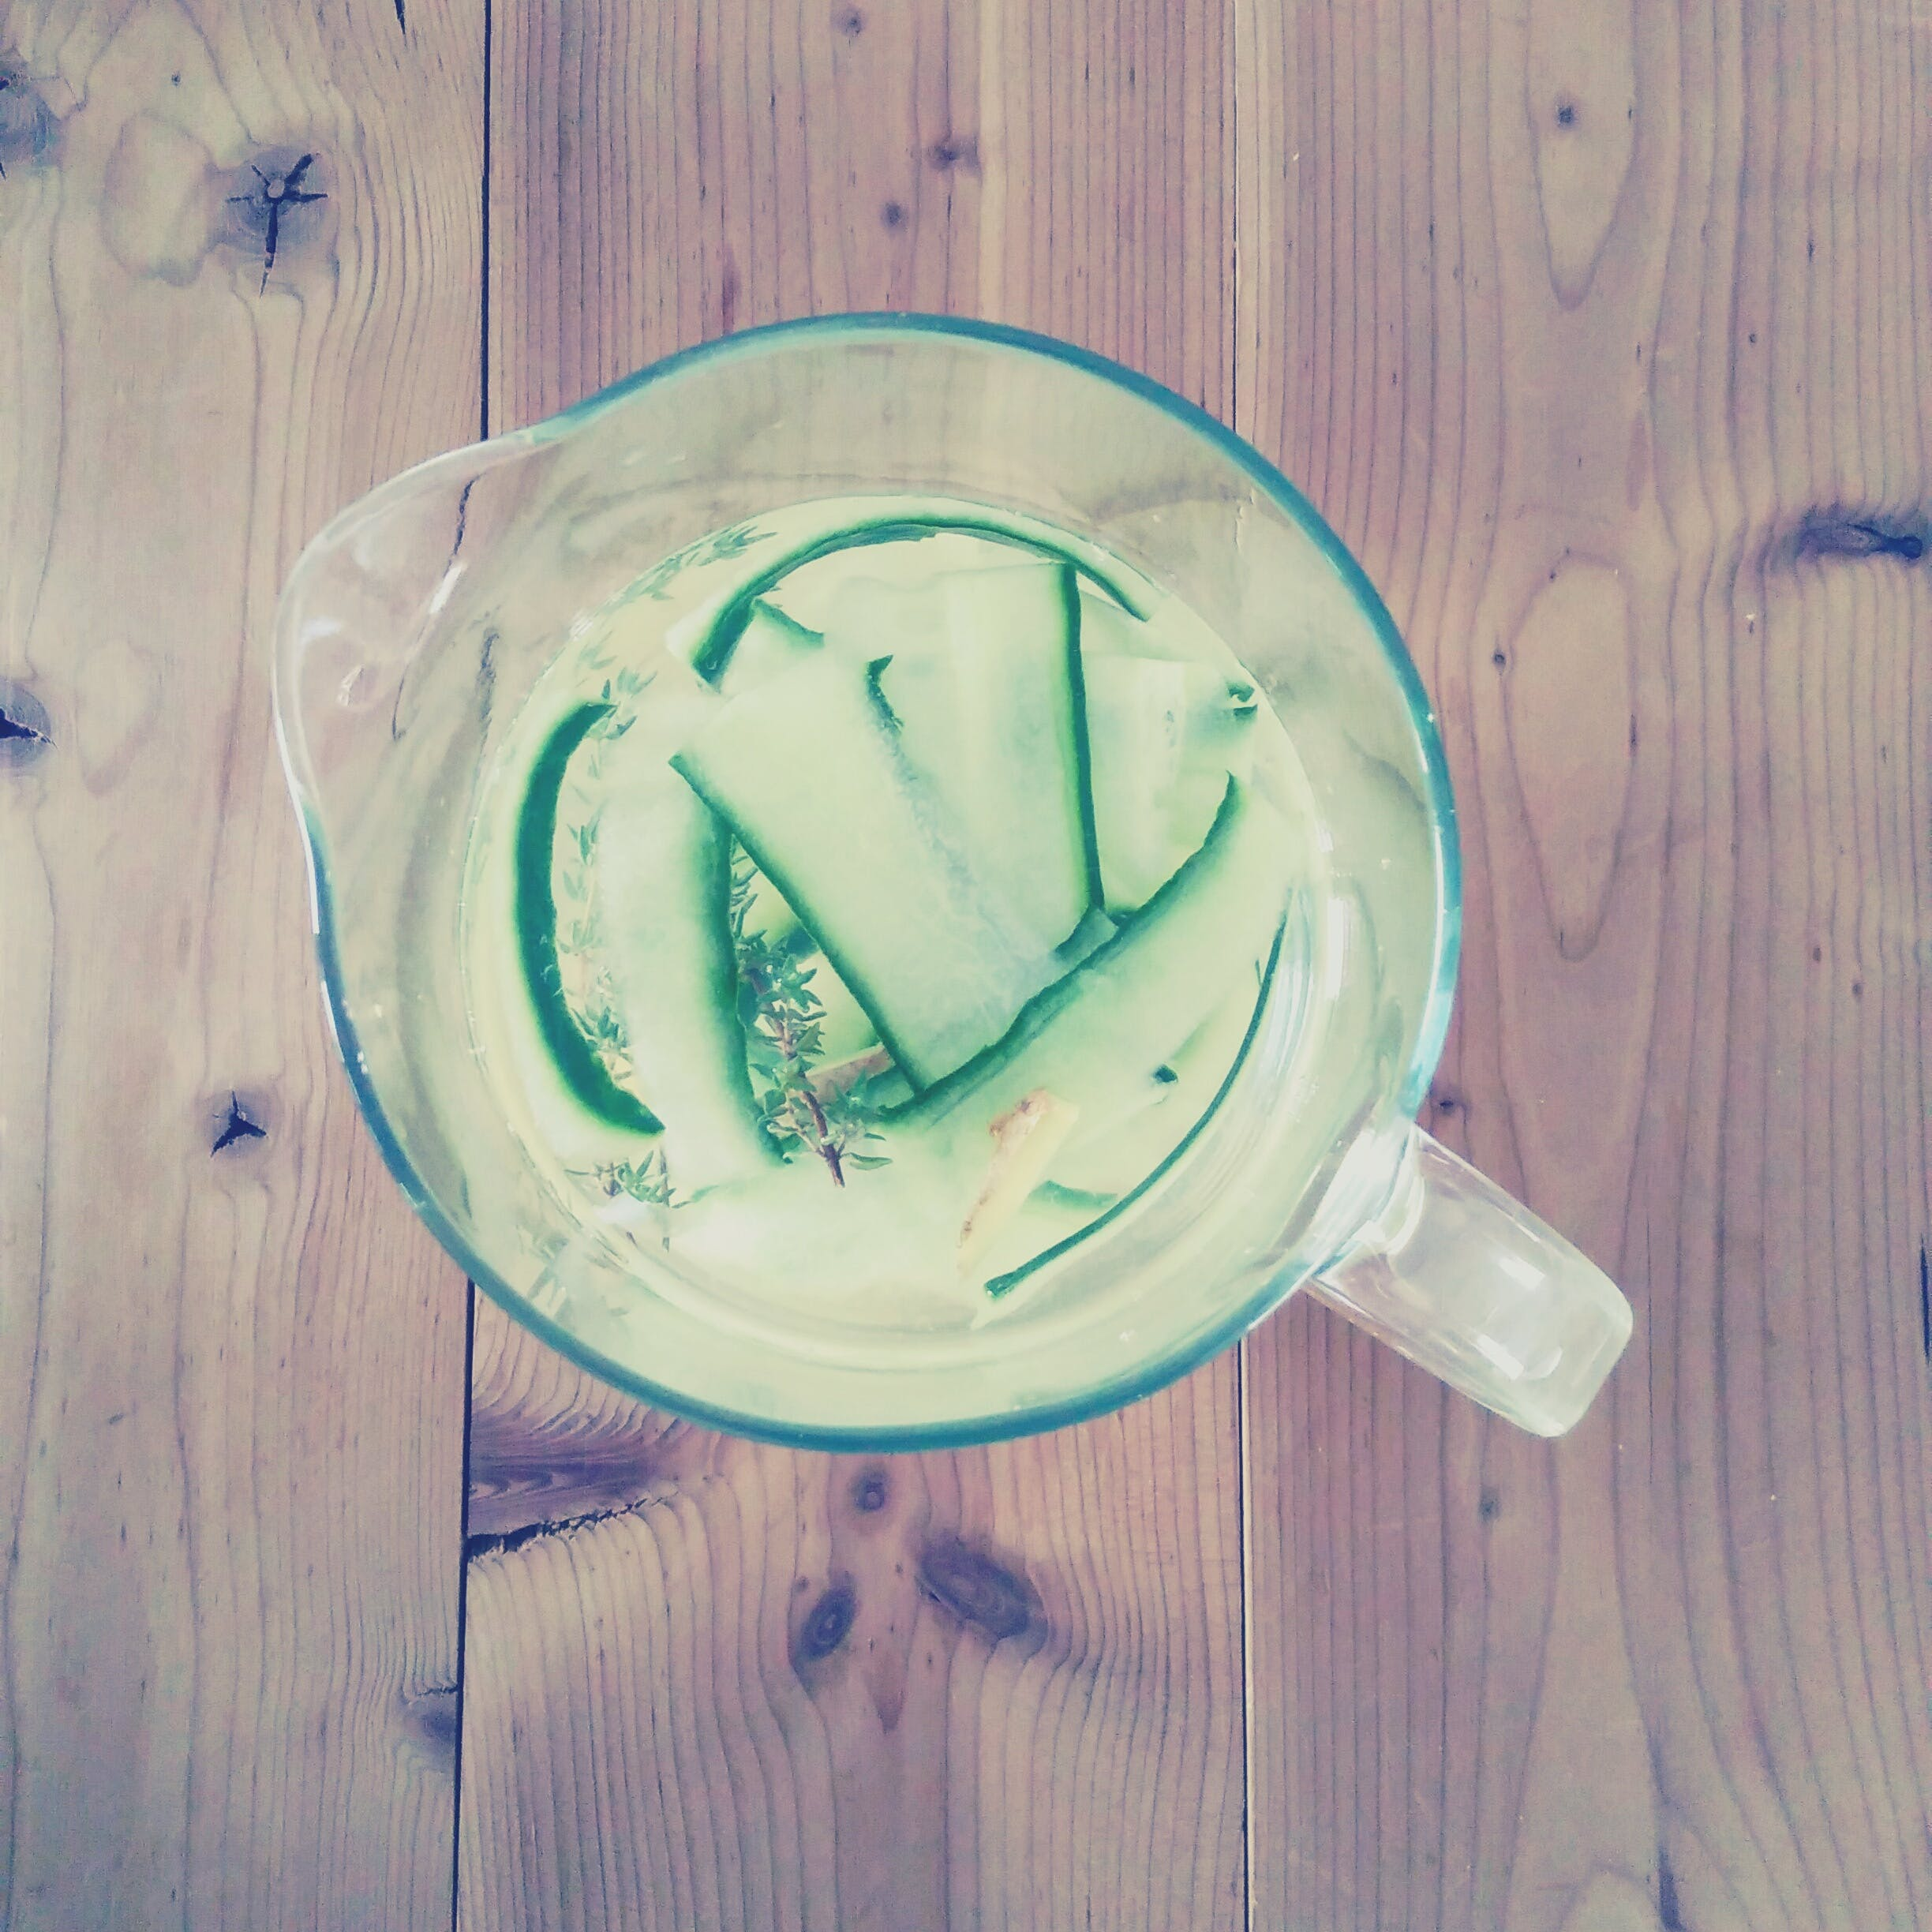 Free stock photo of cucumber, tea, wood